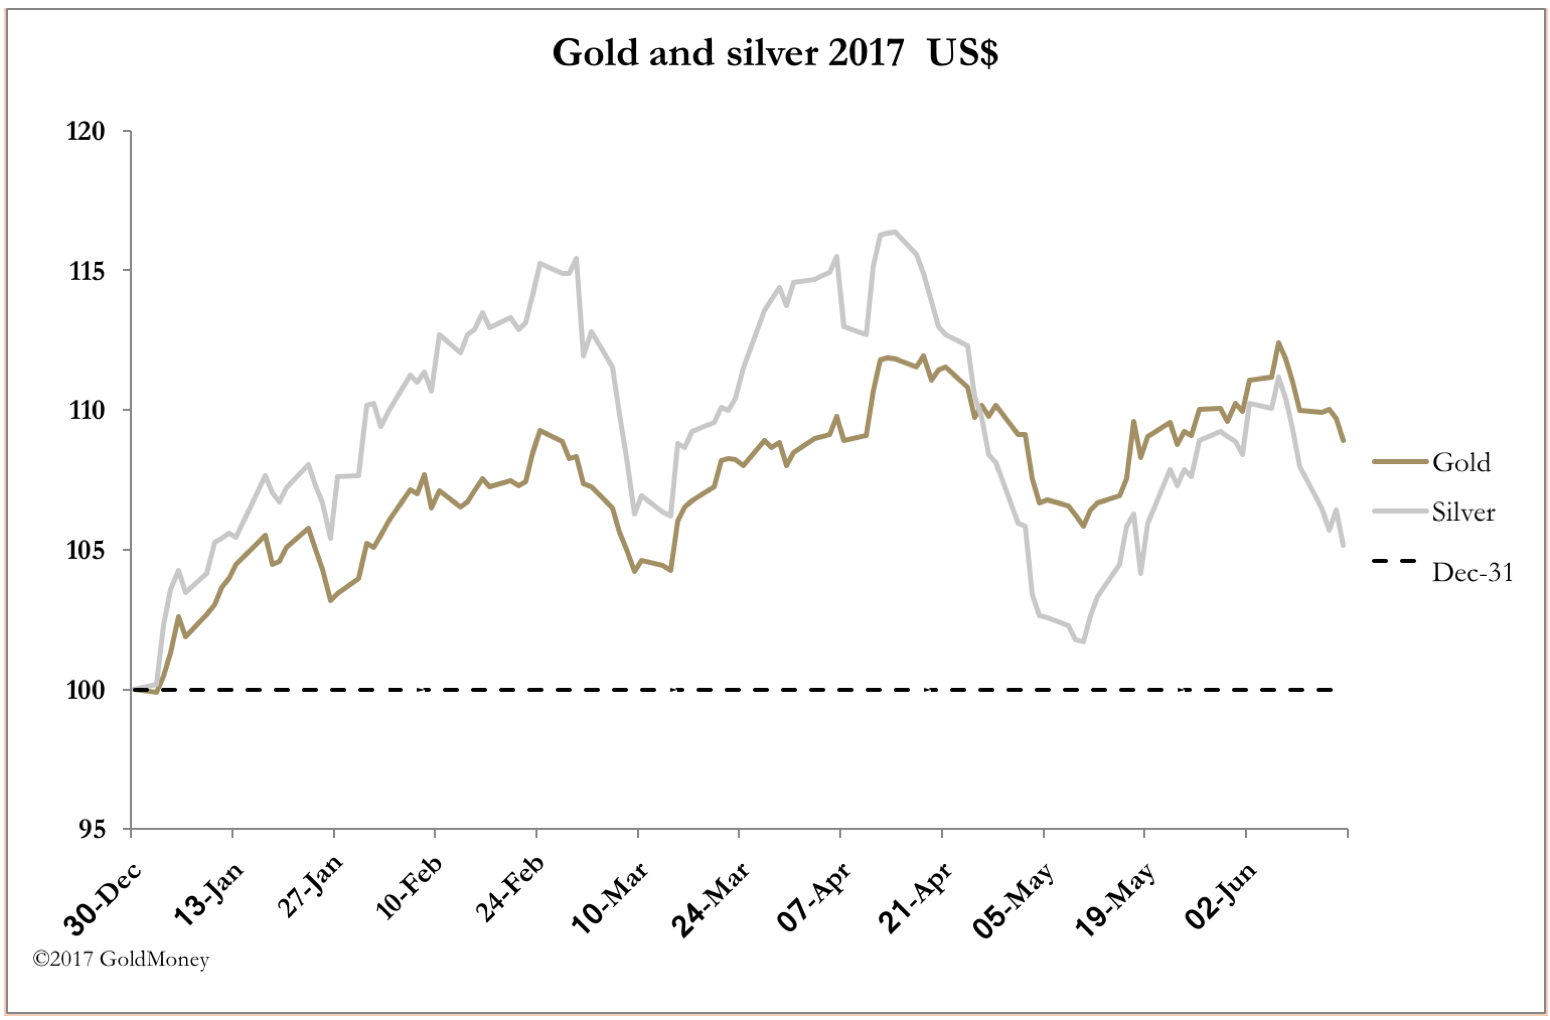 Gold vs. Silver June 16 2017